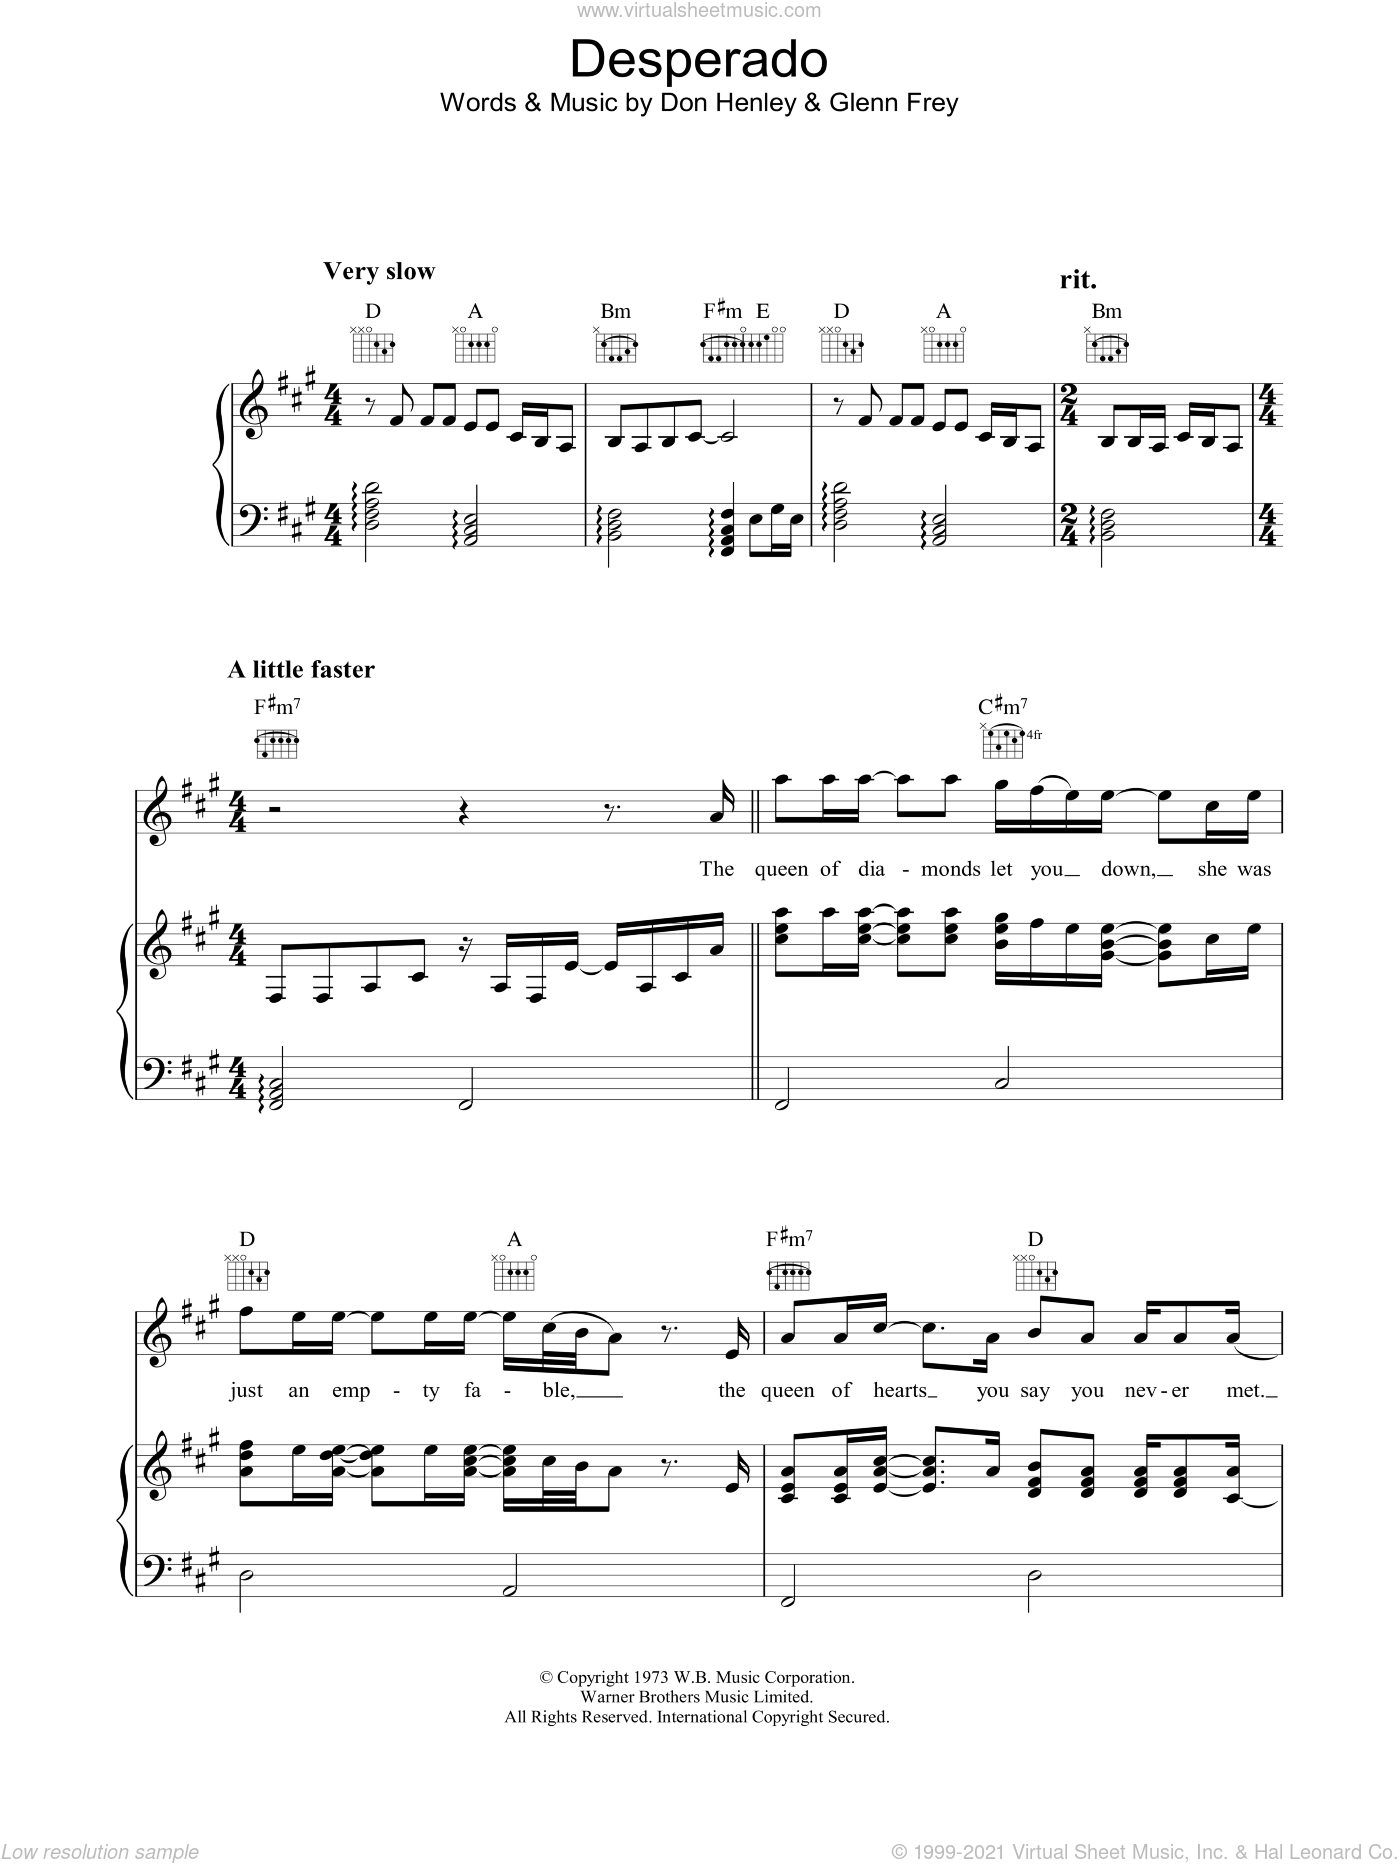 Desperado (Part II) sheet music for voice, piano or guitar by Eagles, Don Henley and Glenn Frey, intermediate voice, piano or guitar. Score Image Preview.